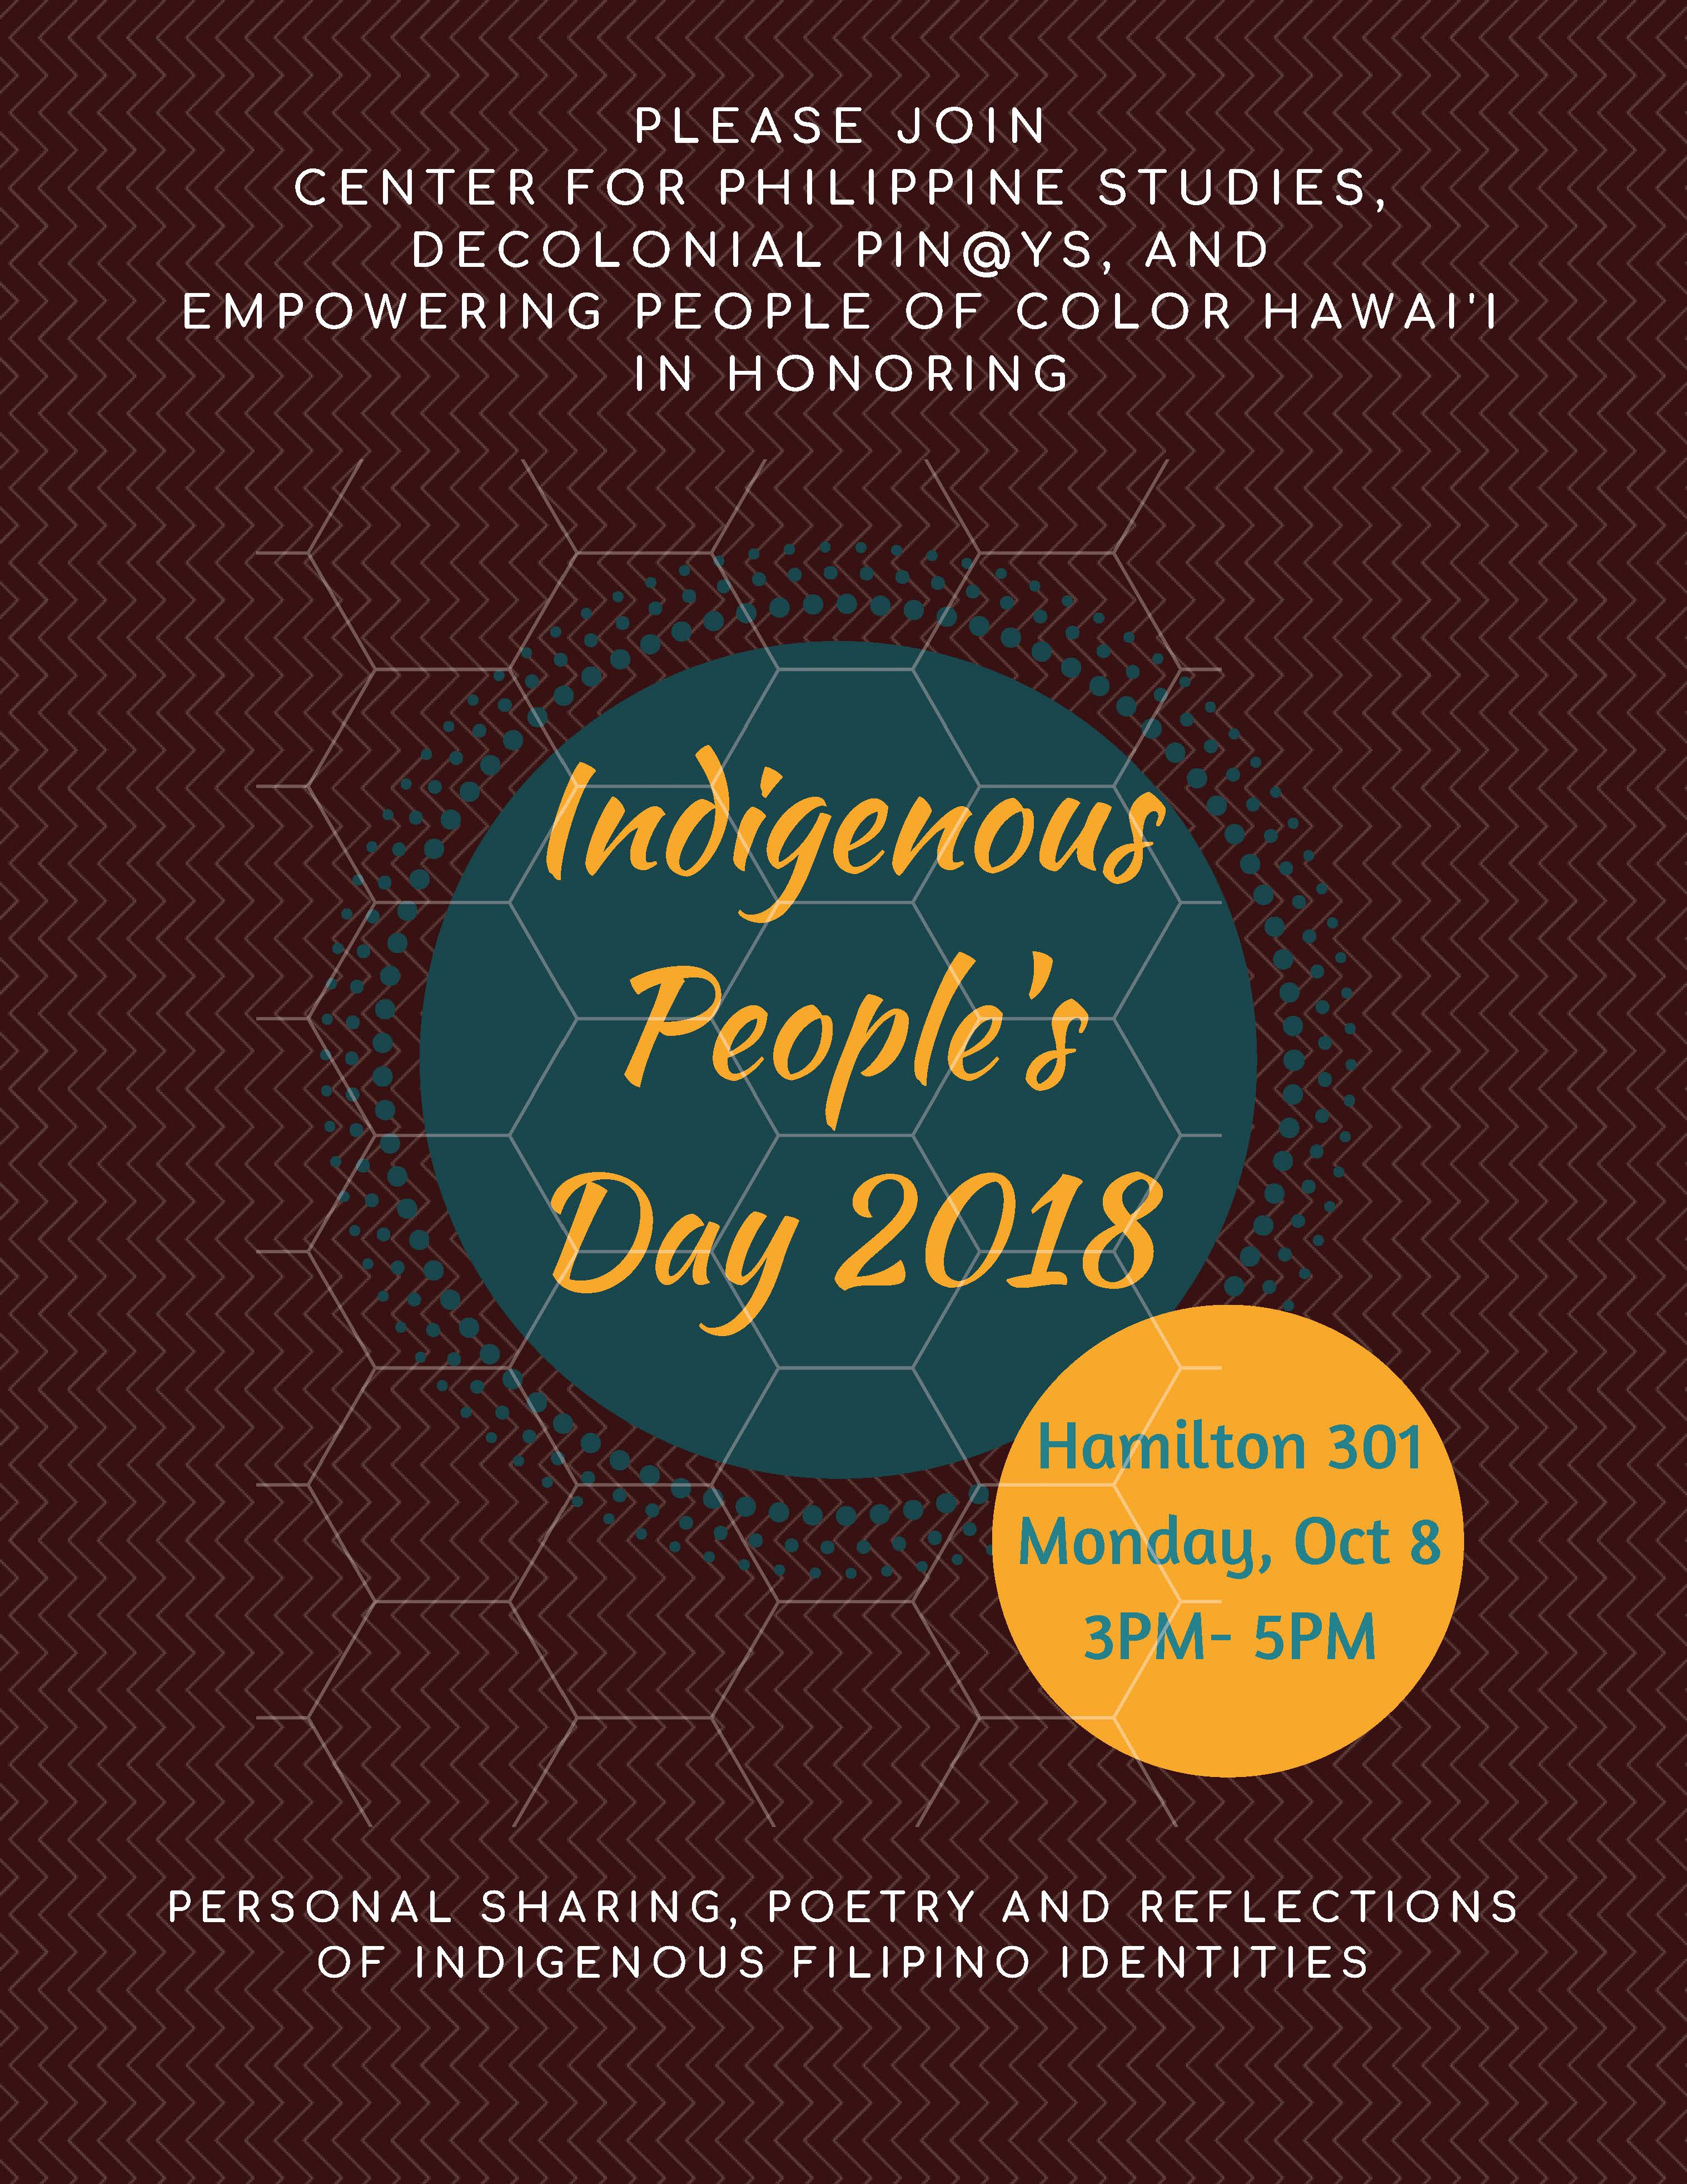 Indigenous Peoples Day 2018 performances, Hamilton 301 on 10/8 from 3-5pm